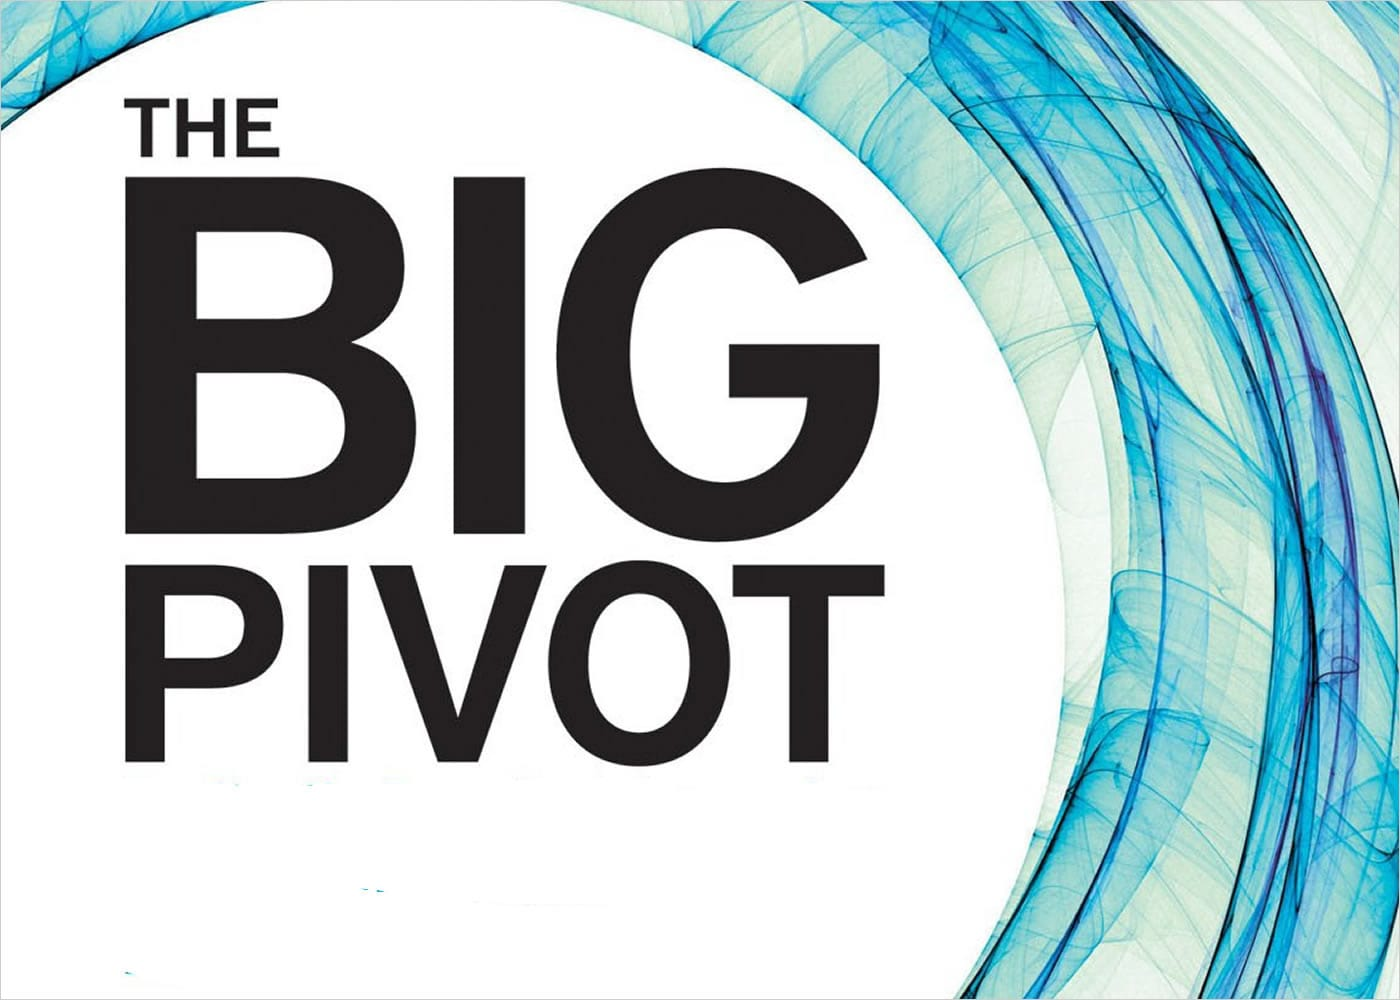 naem-webinar-2015-the-big-pivot-700x500